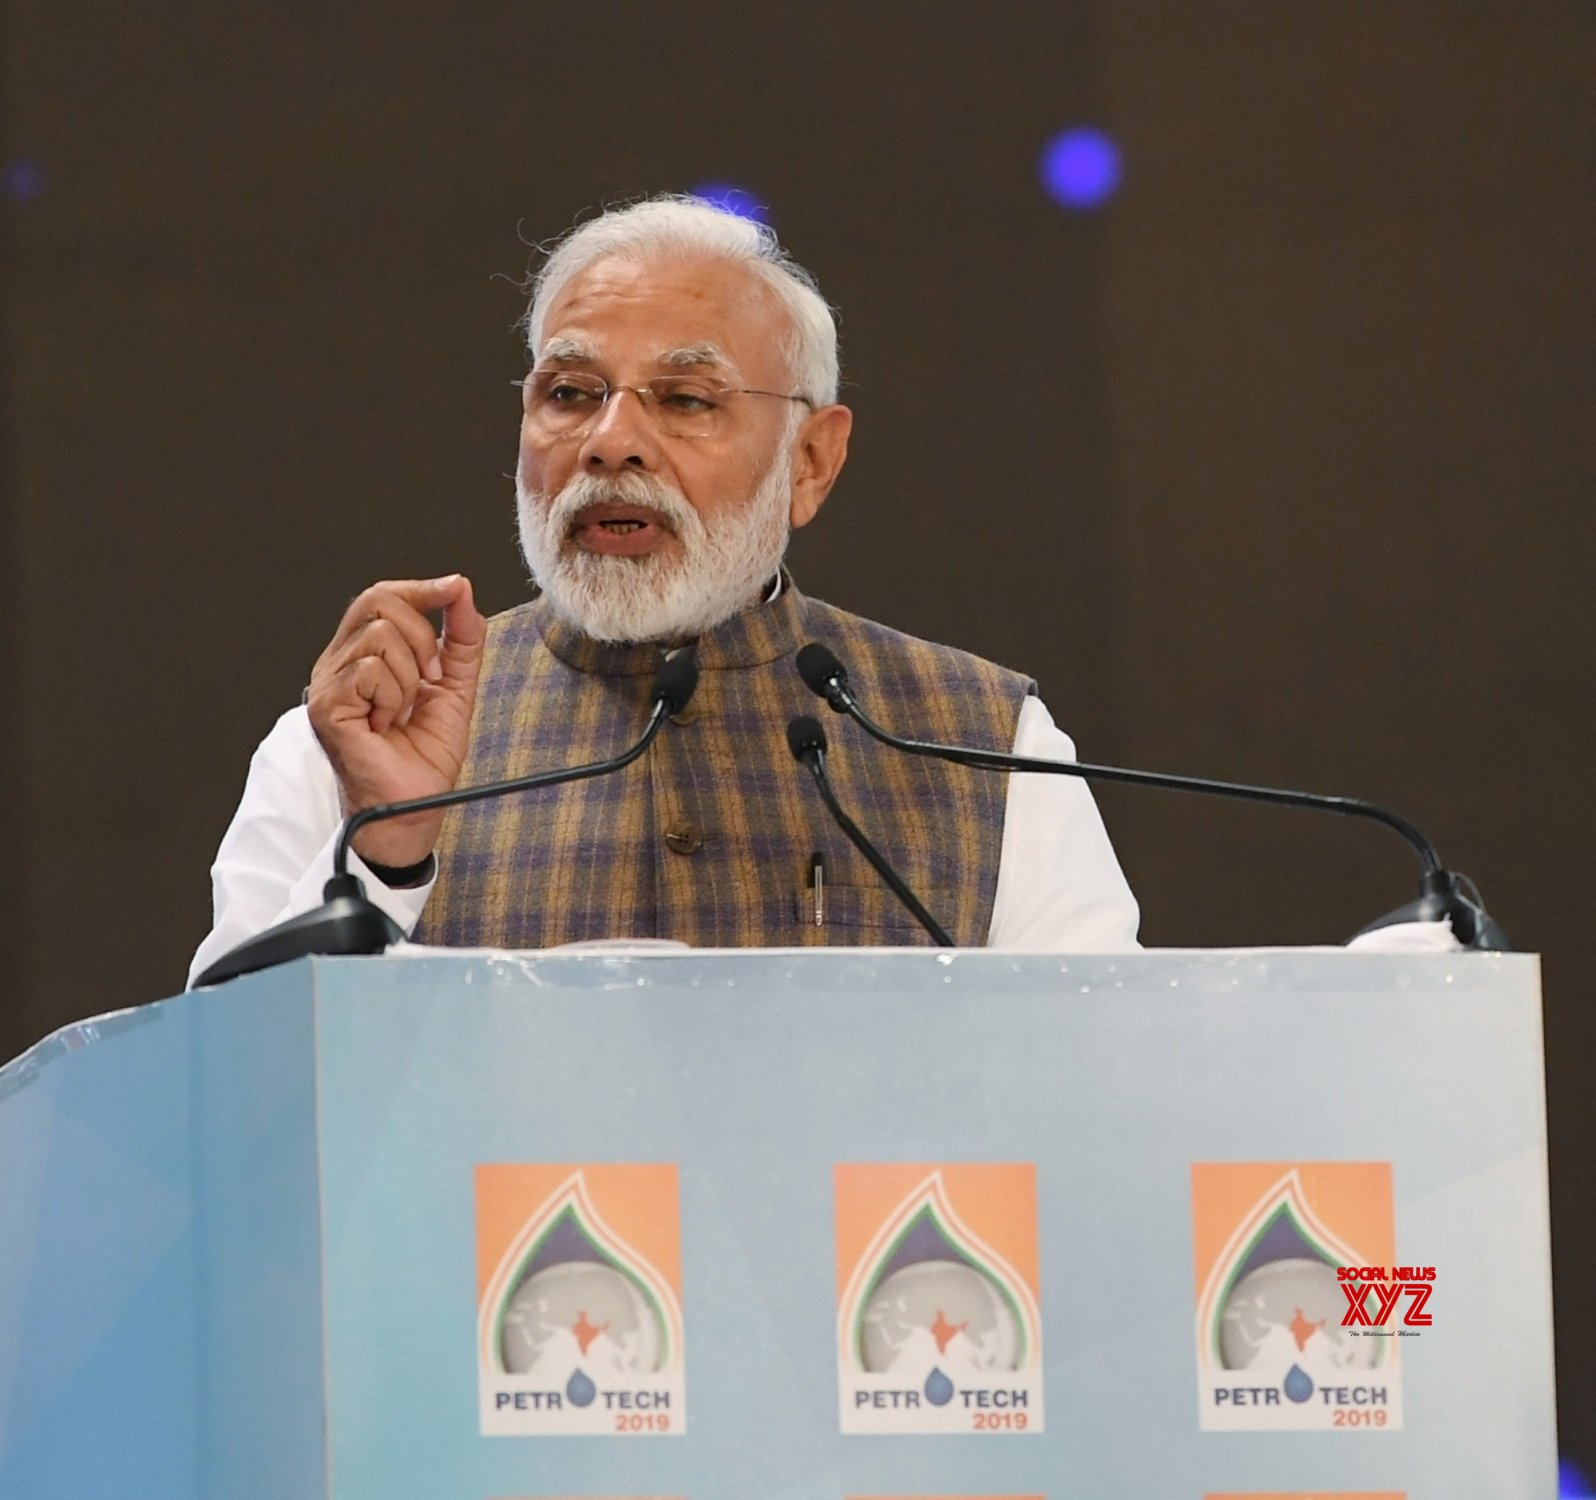 Greater Noida: PETROTECH - 2019 - PM Modi #Gallery